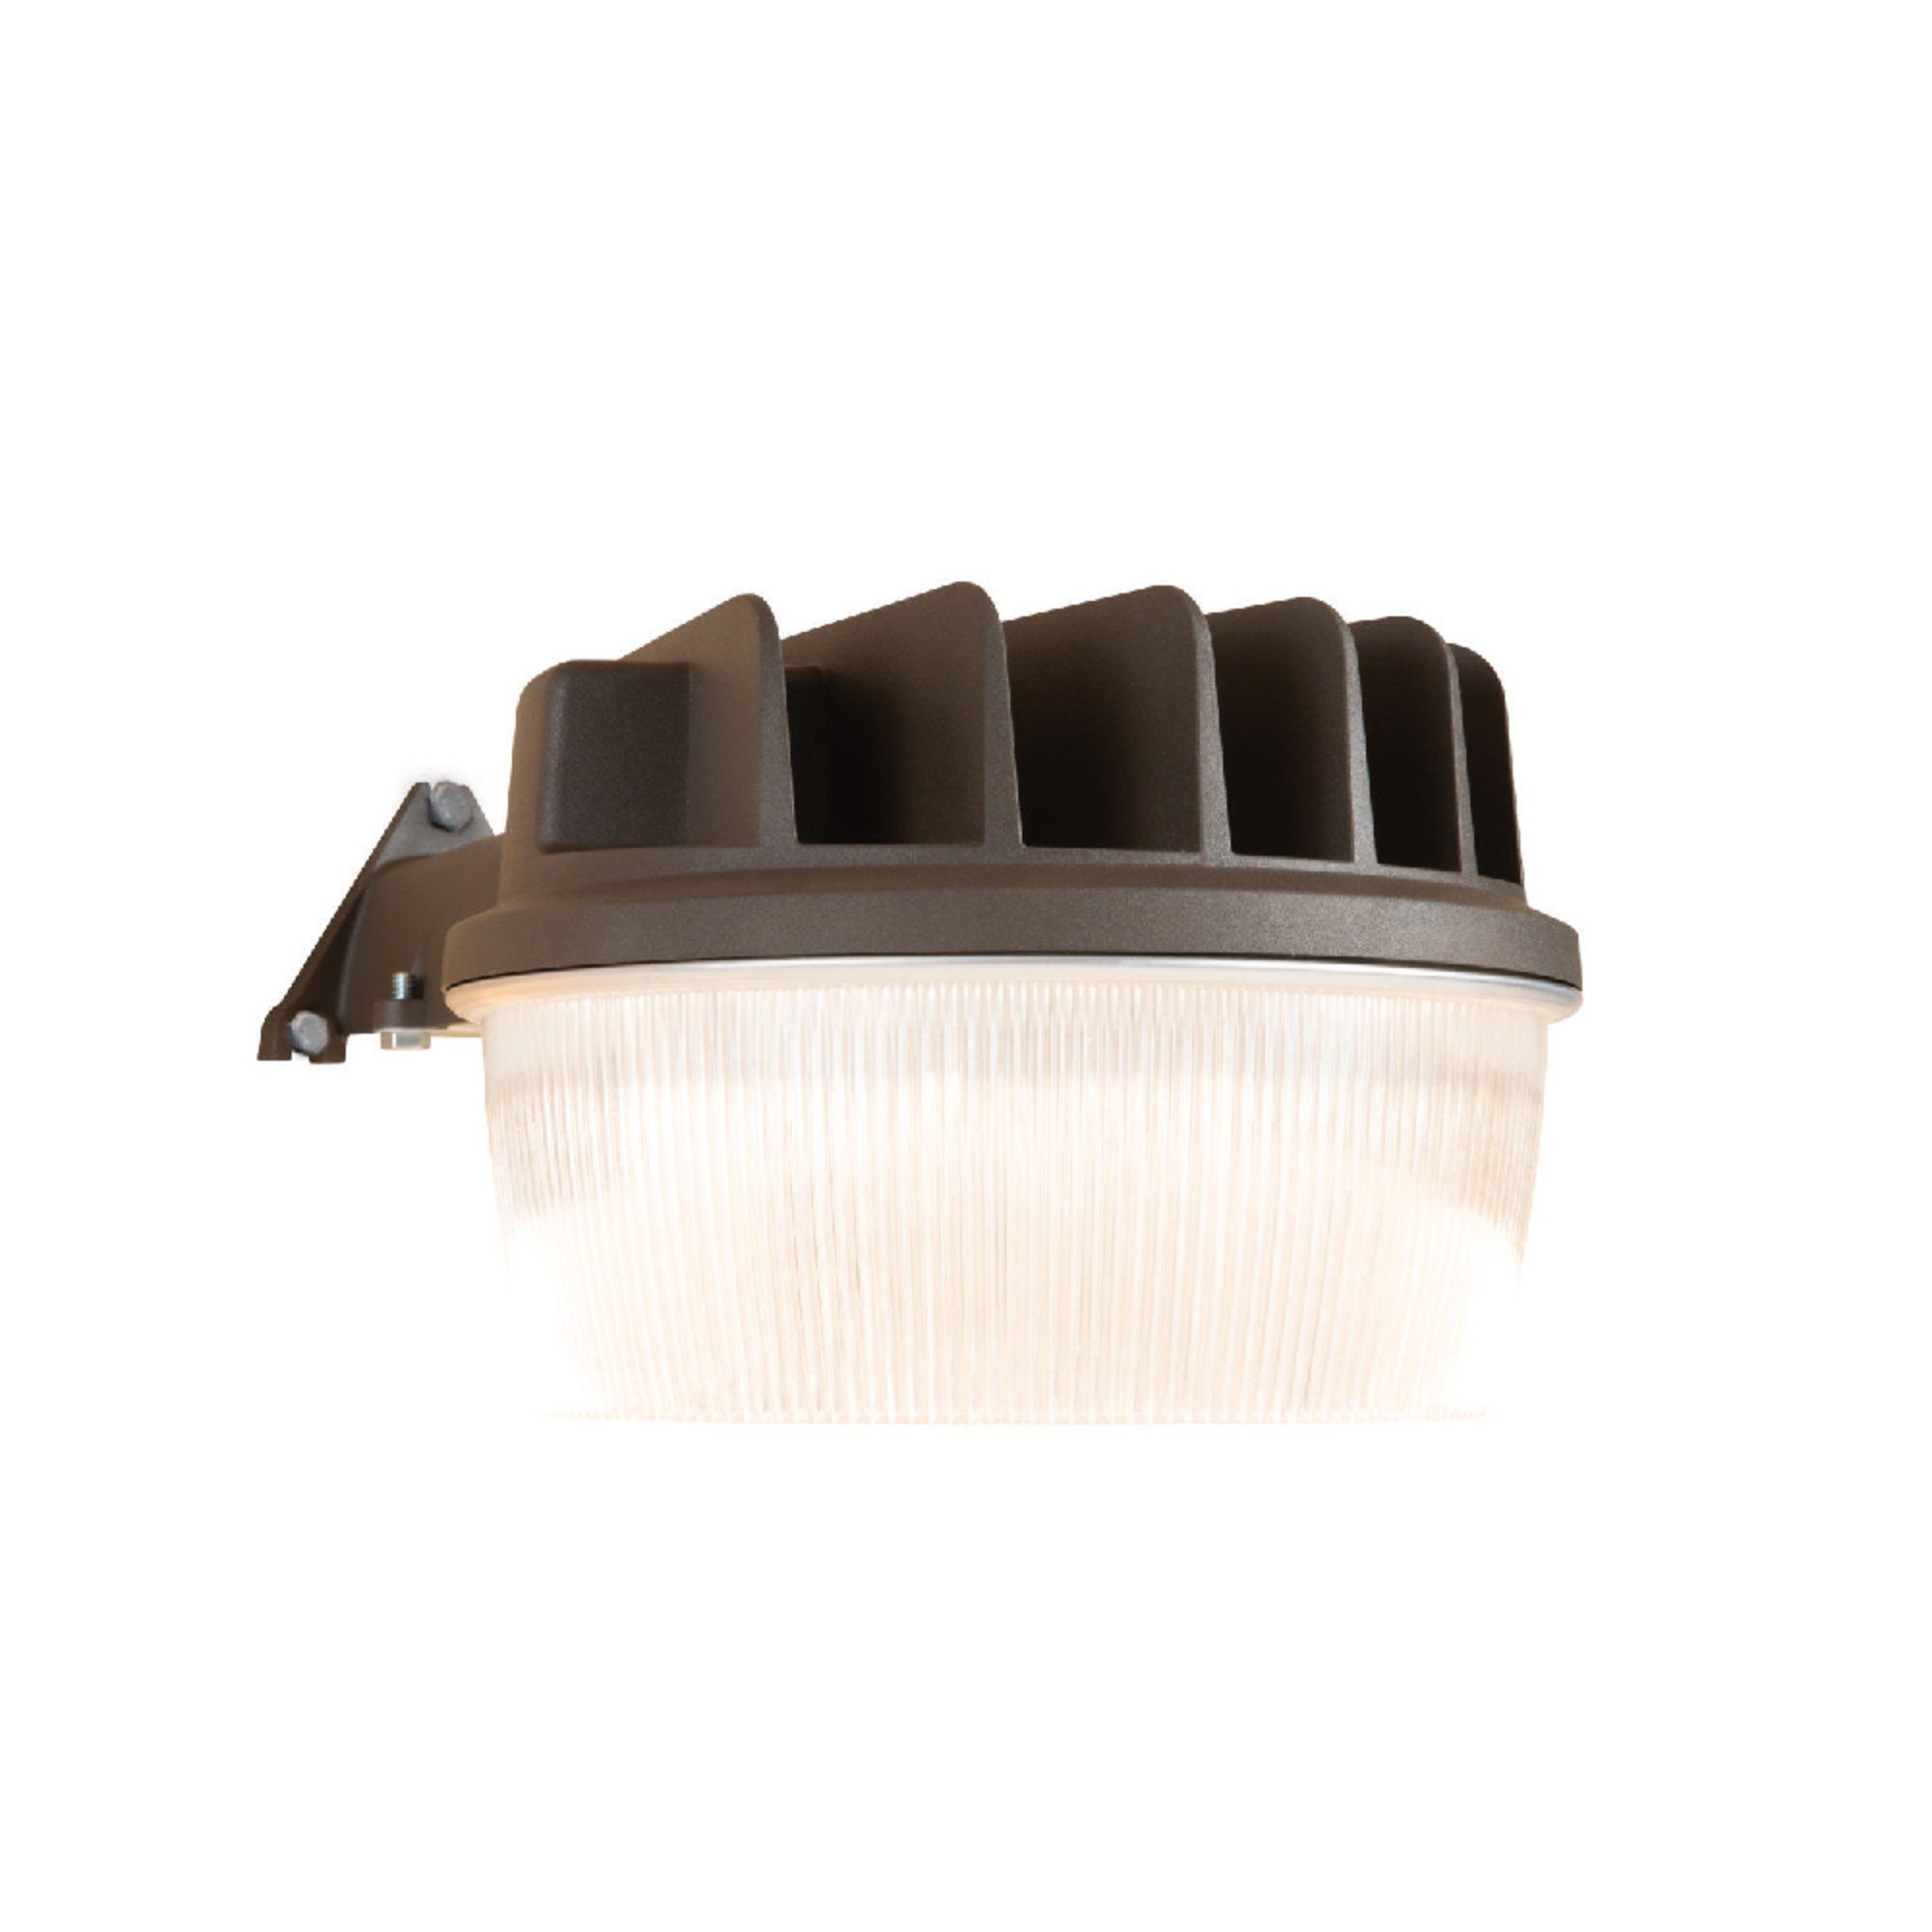 Halo AL1550LPC Outdoor Integrated Led Dusk to Dawn Area & Wall Security Light with Integrated Photo Control- 1900 Lumens, Bronze